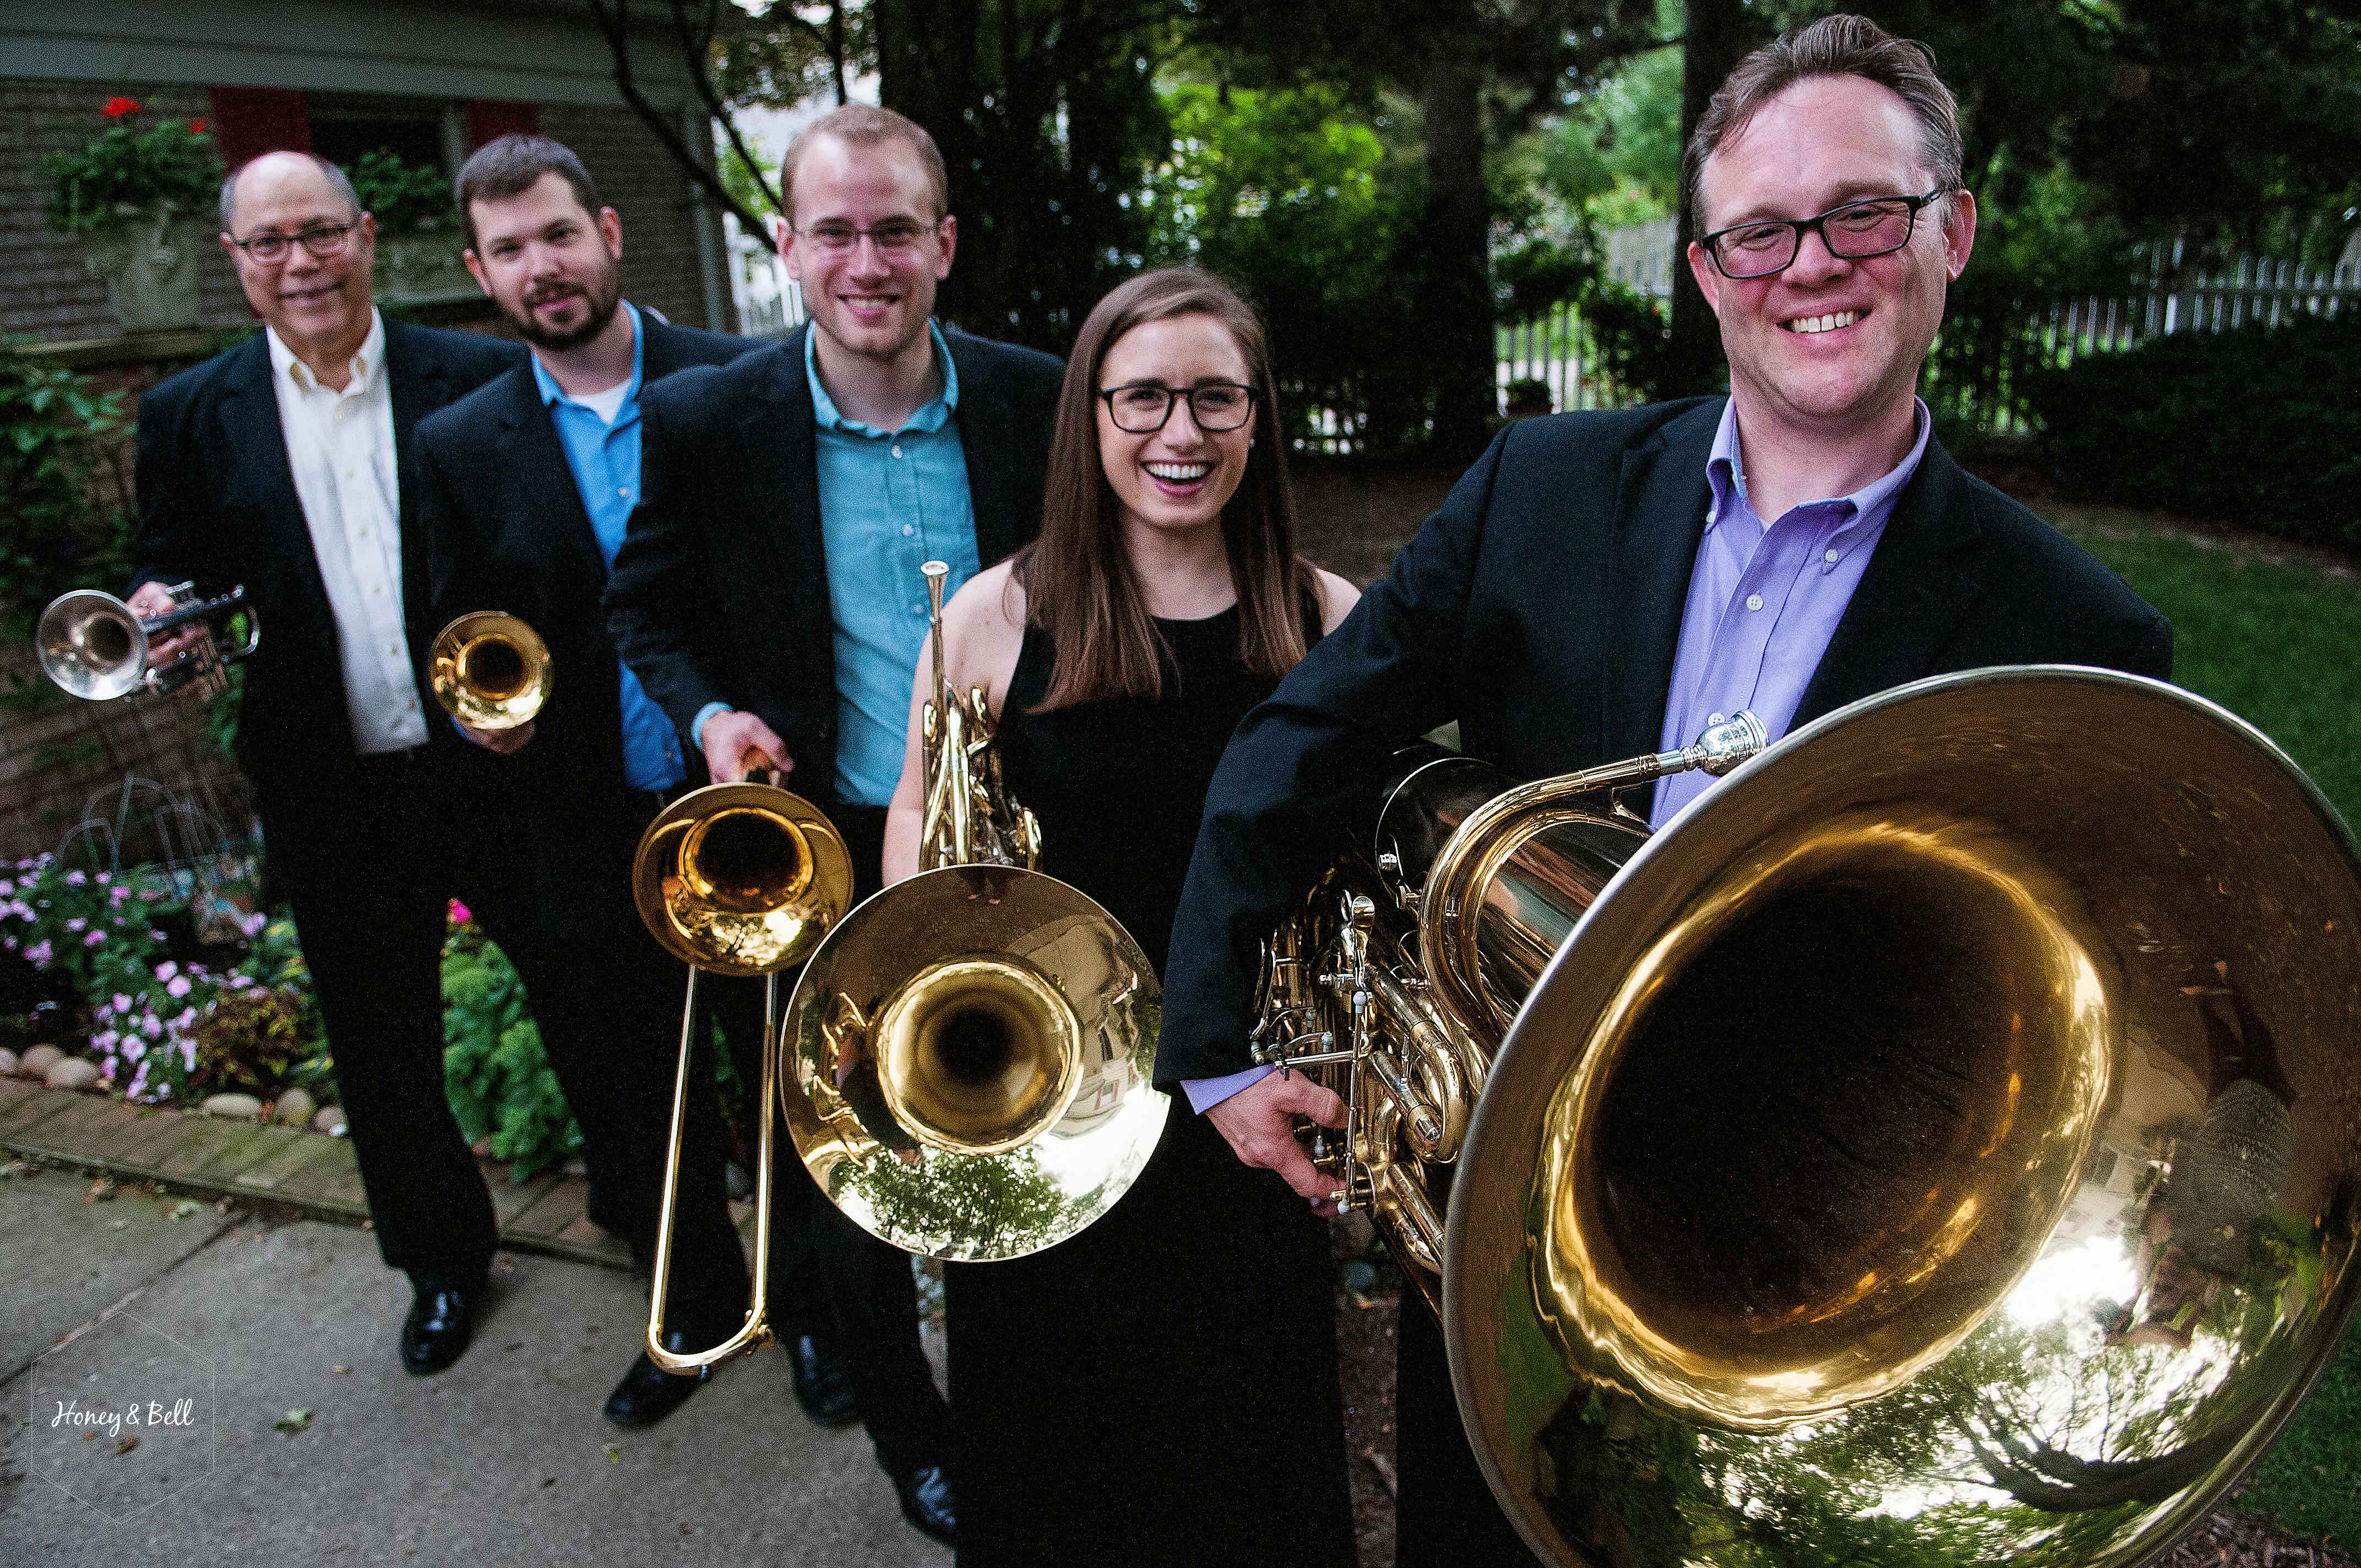 north-of-canada-brass-quintet-detroit-michigan-grosse-pointe-band-photographer-22